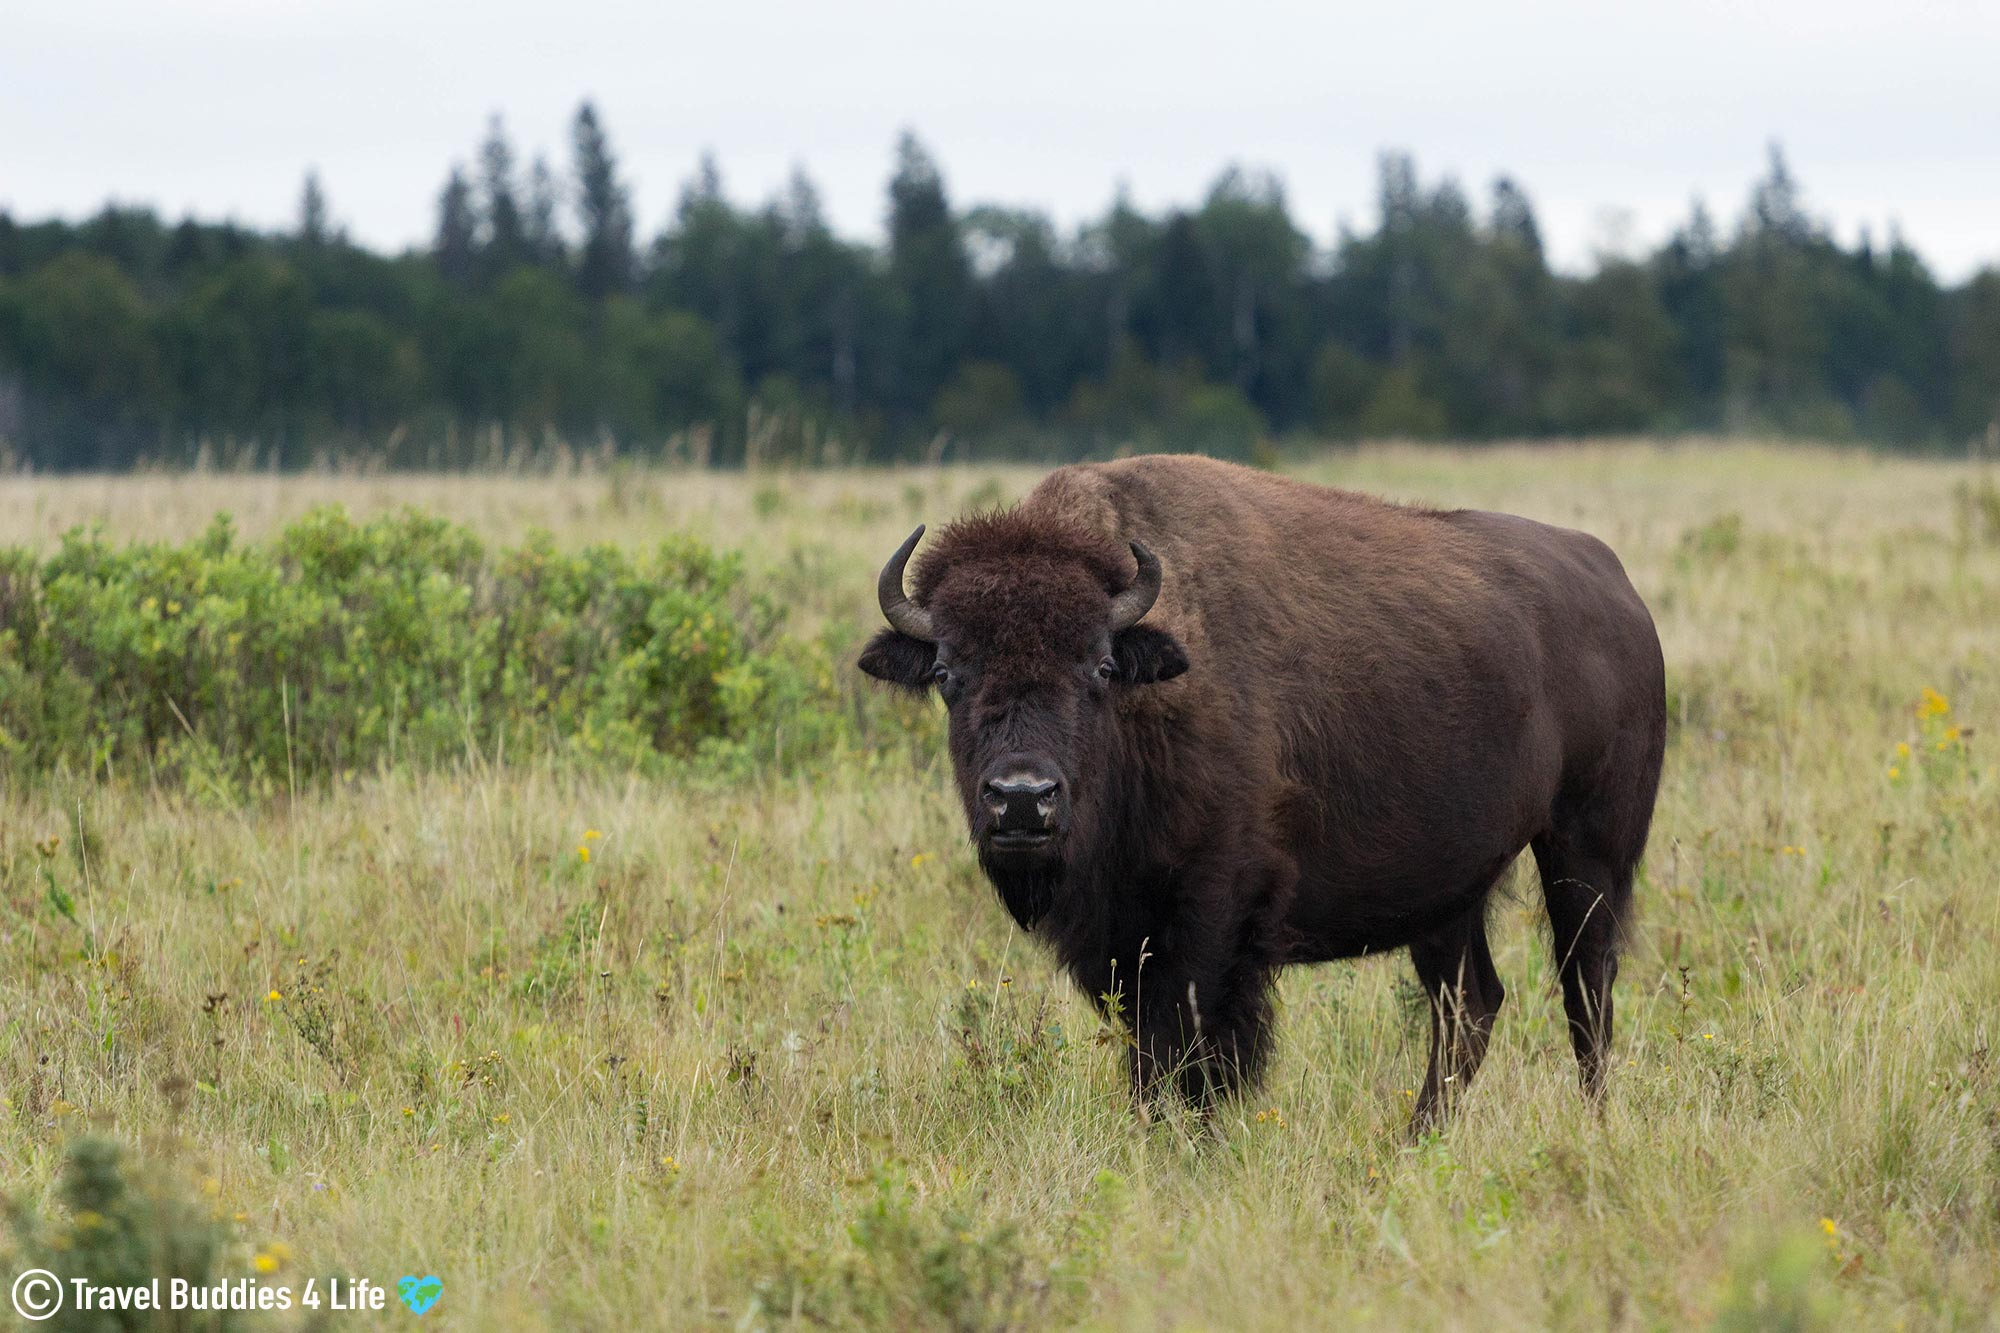 A Lone Plain Bison In The Grassy Fields Of Riding Mountain National Park In Northern Manitoba, Canada Travels